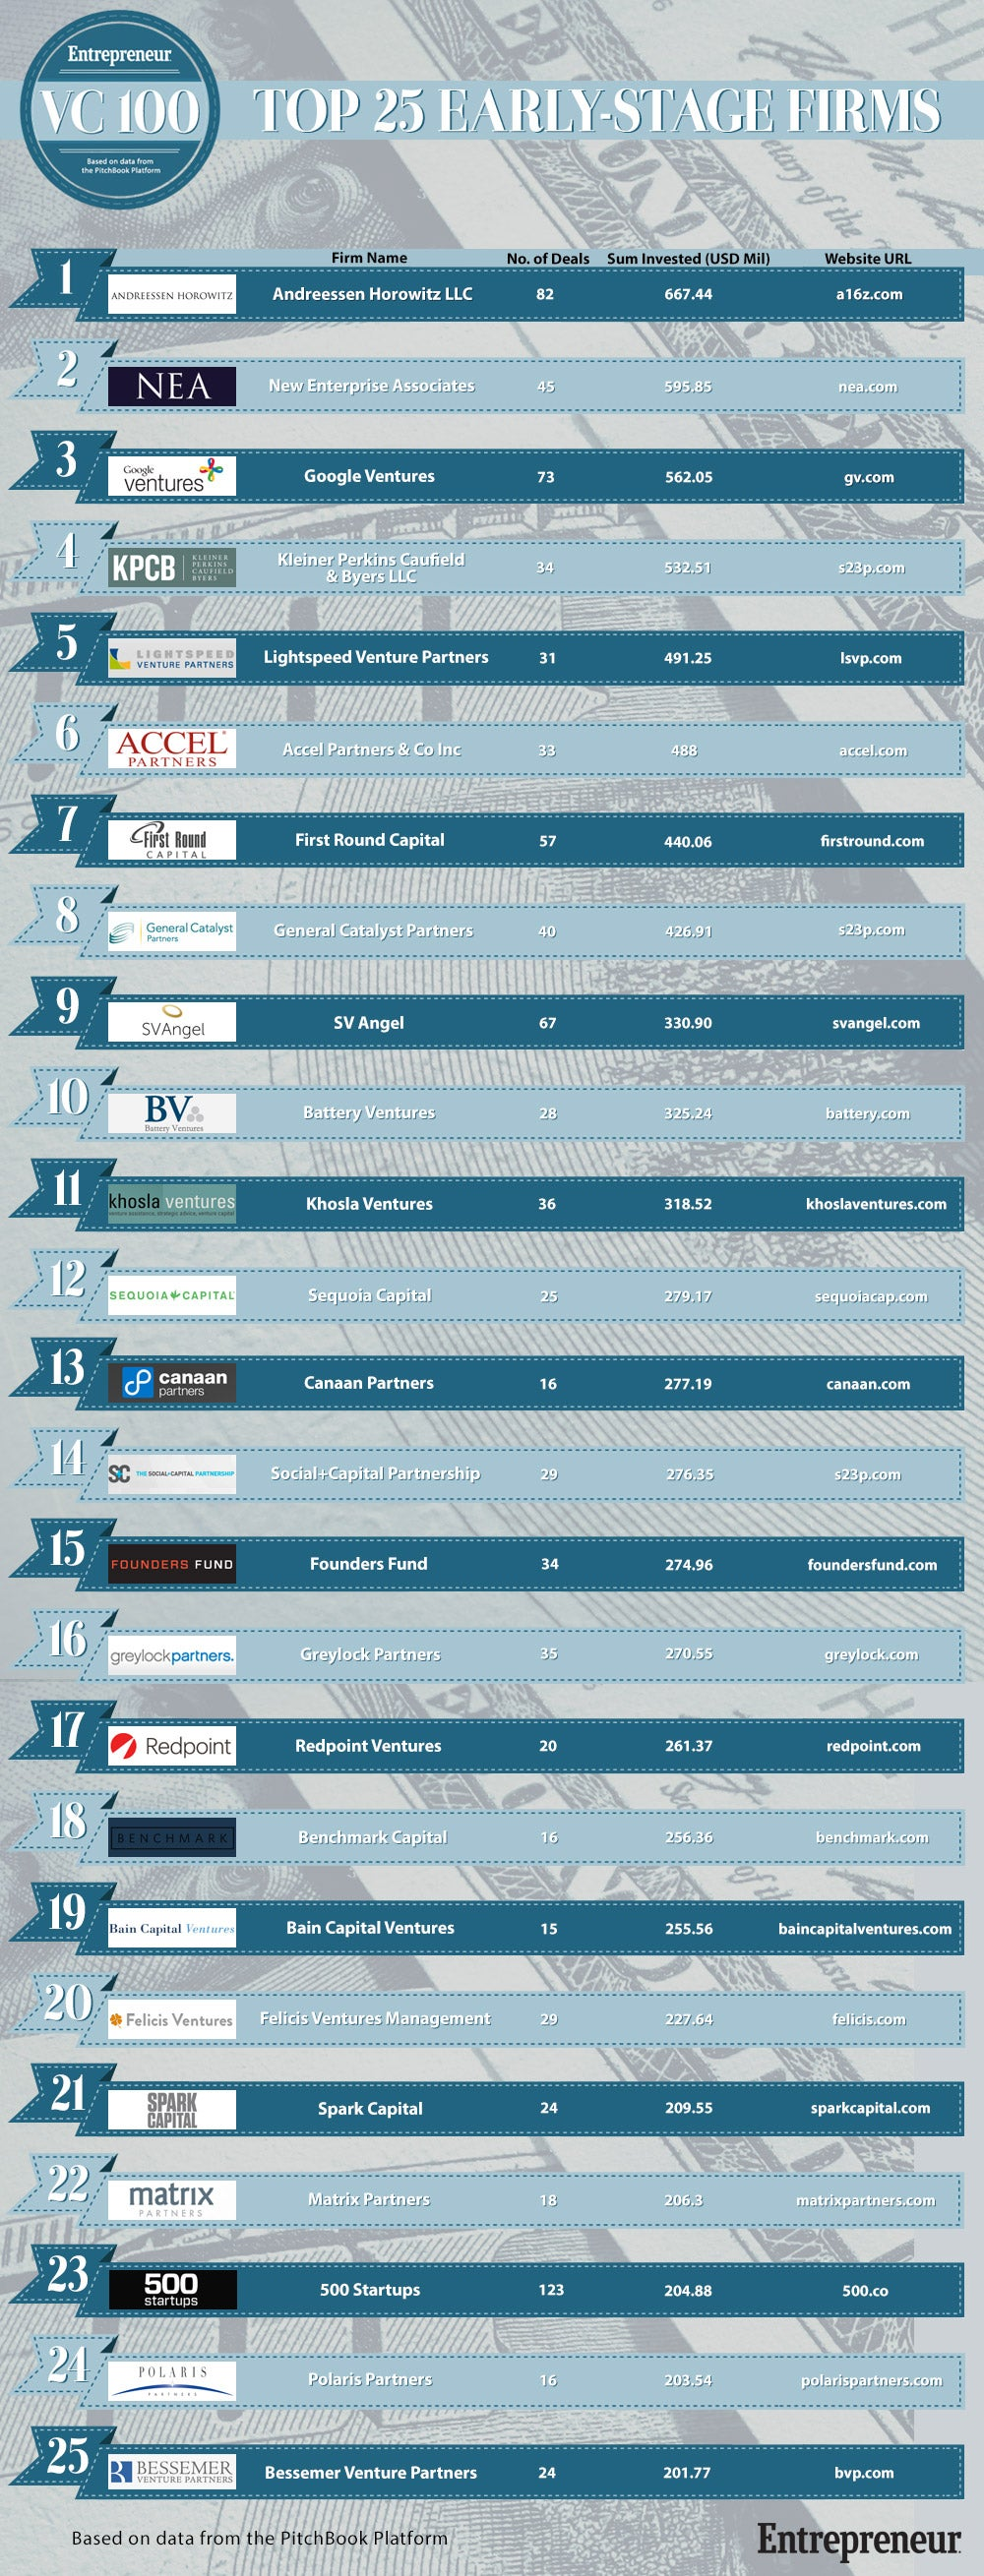 Top 25 Early-stage Firms